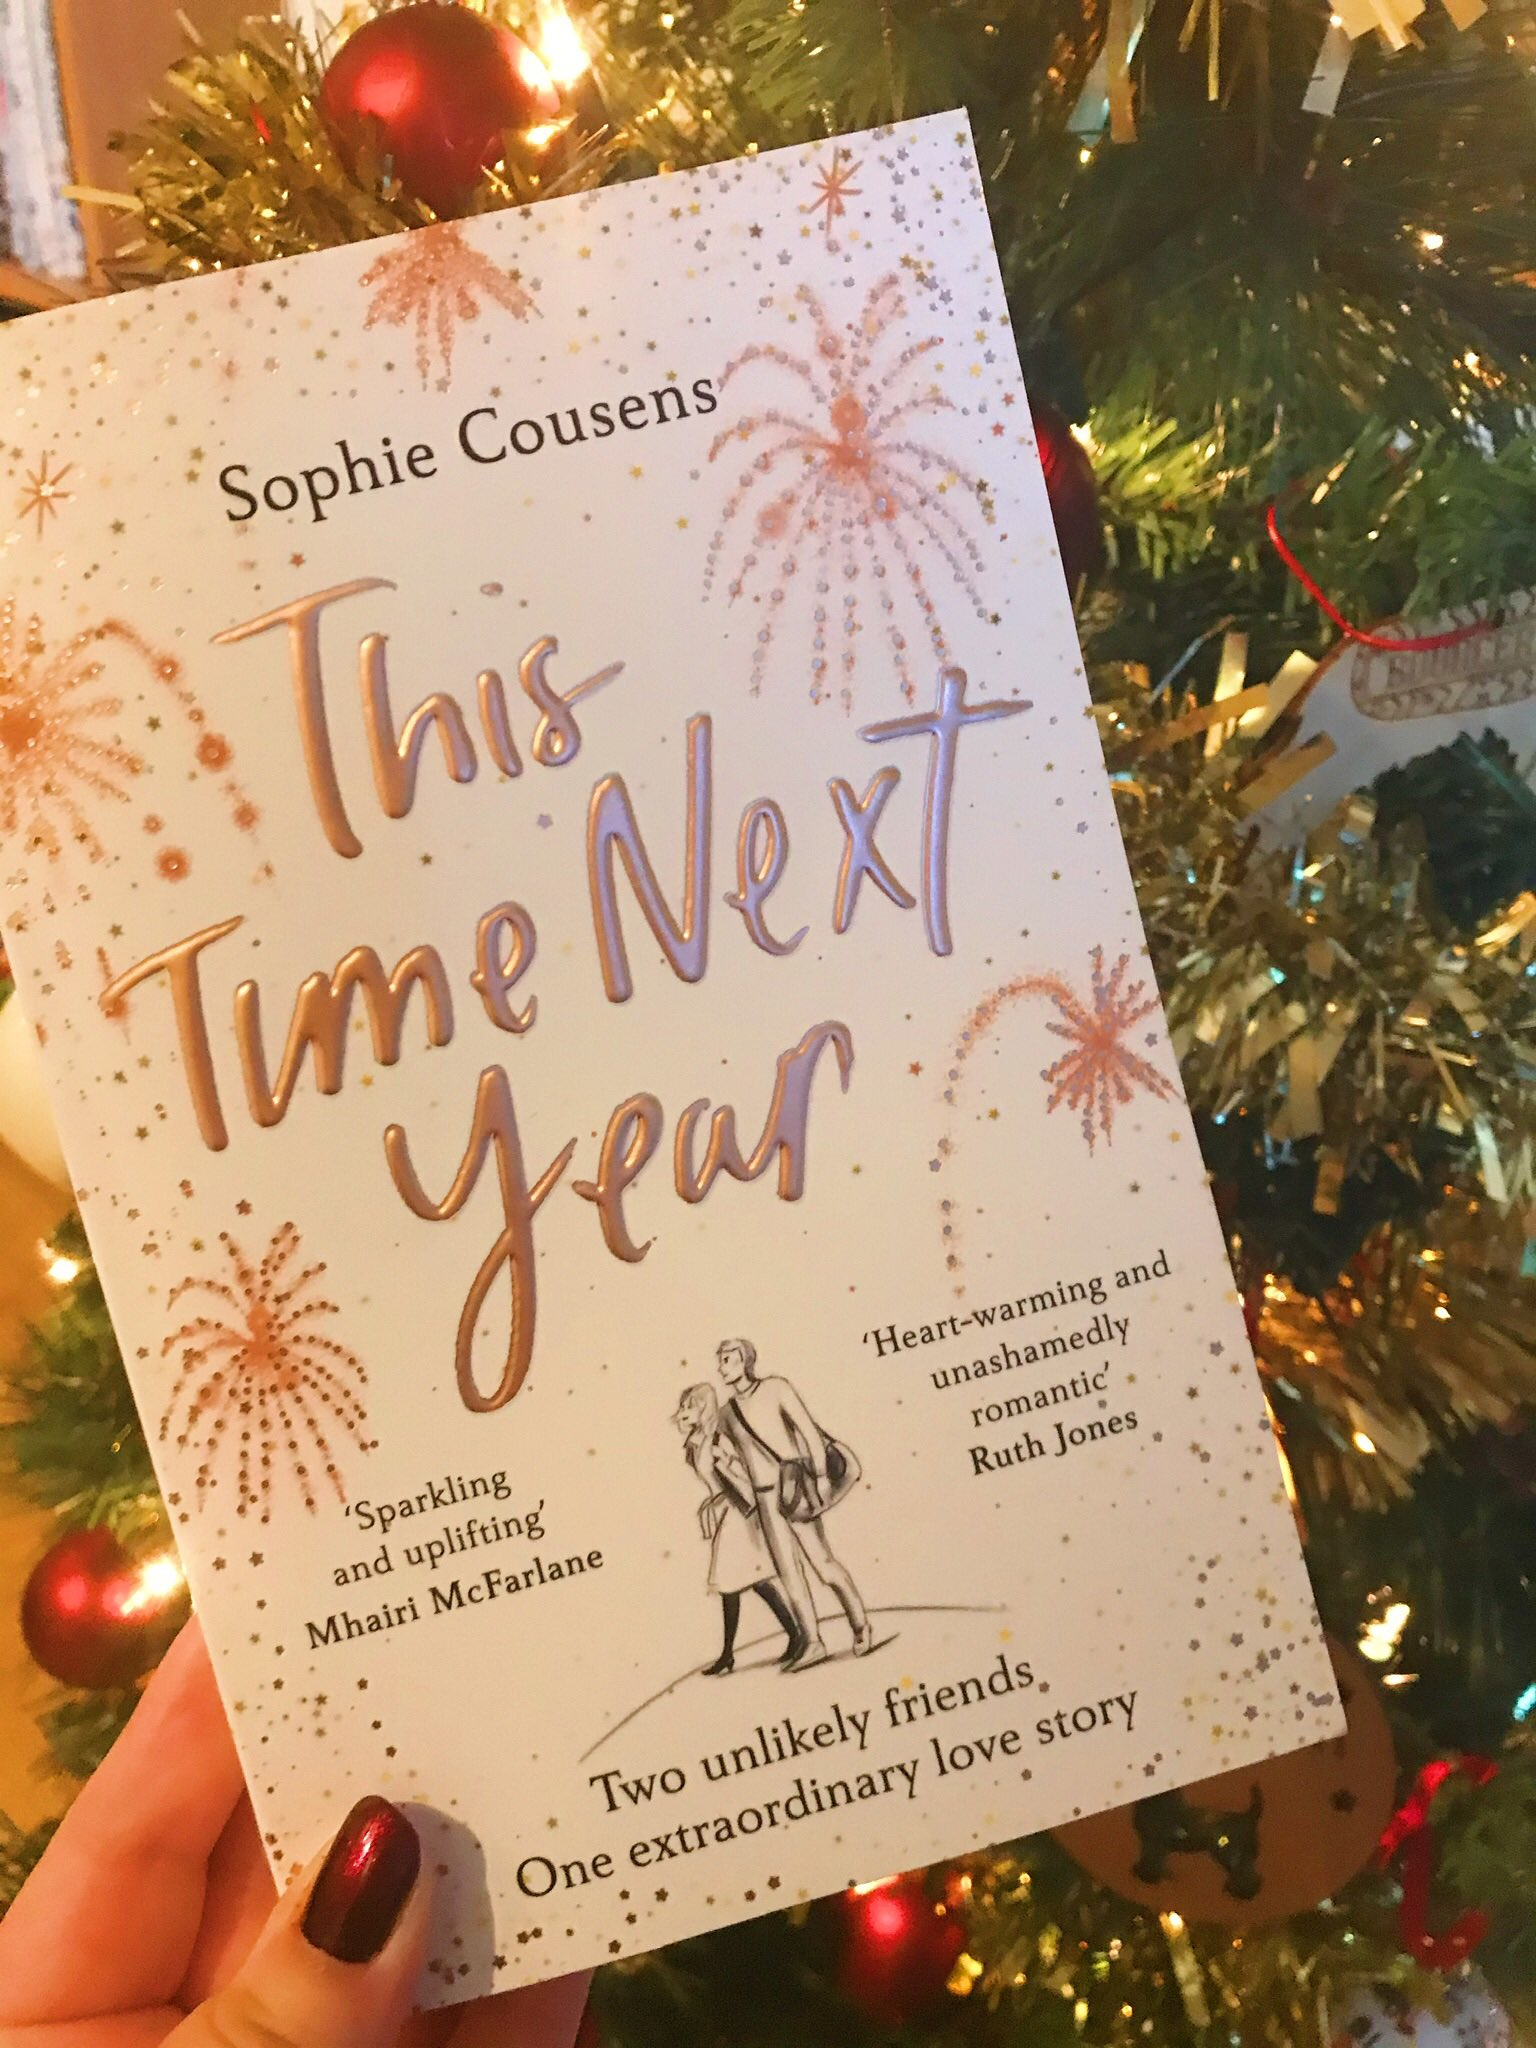 This Time Next Year by Sophie Cousens held up in front of Christmas tree